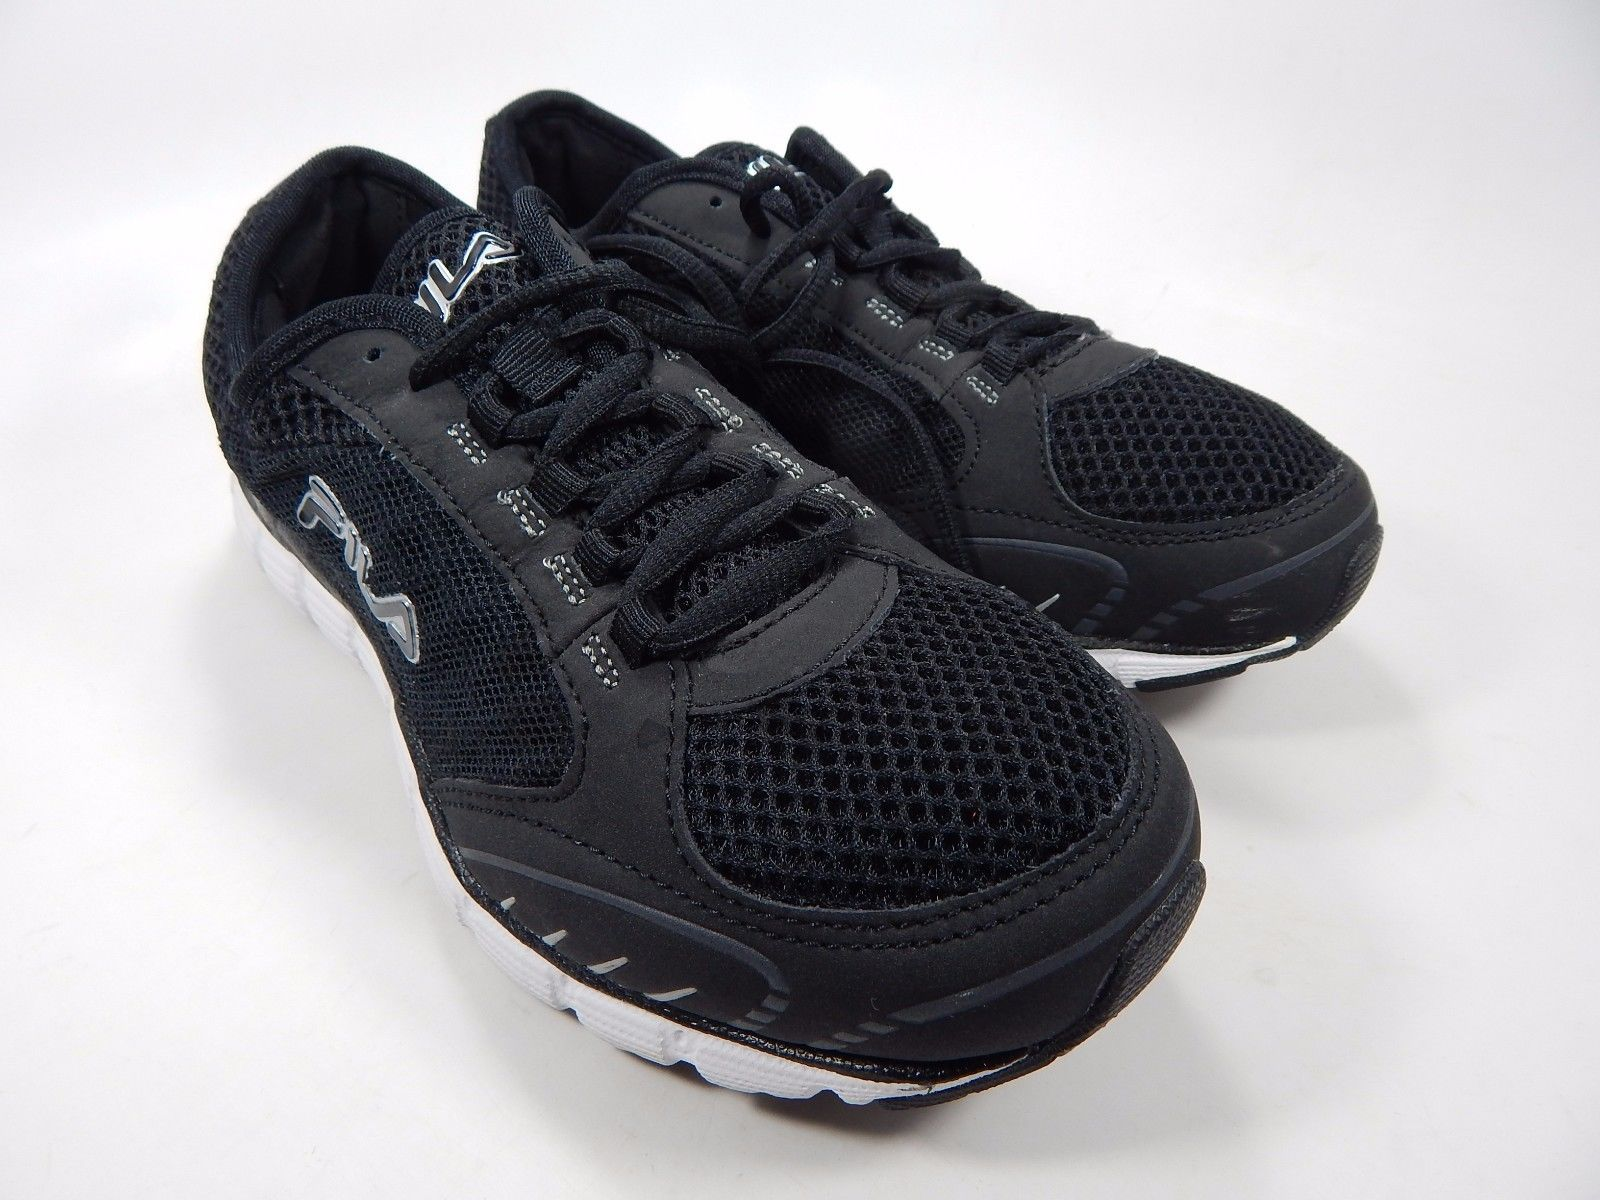 Fila Memory Deluxe 4 Women's Athletic Shoes Size US 7.5 M (B) EU 38.5 Black